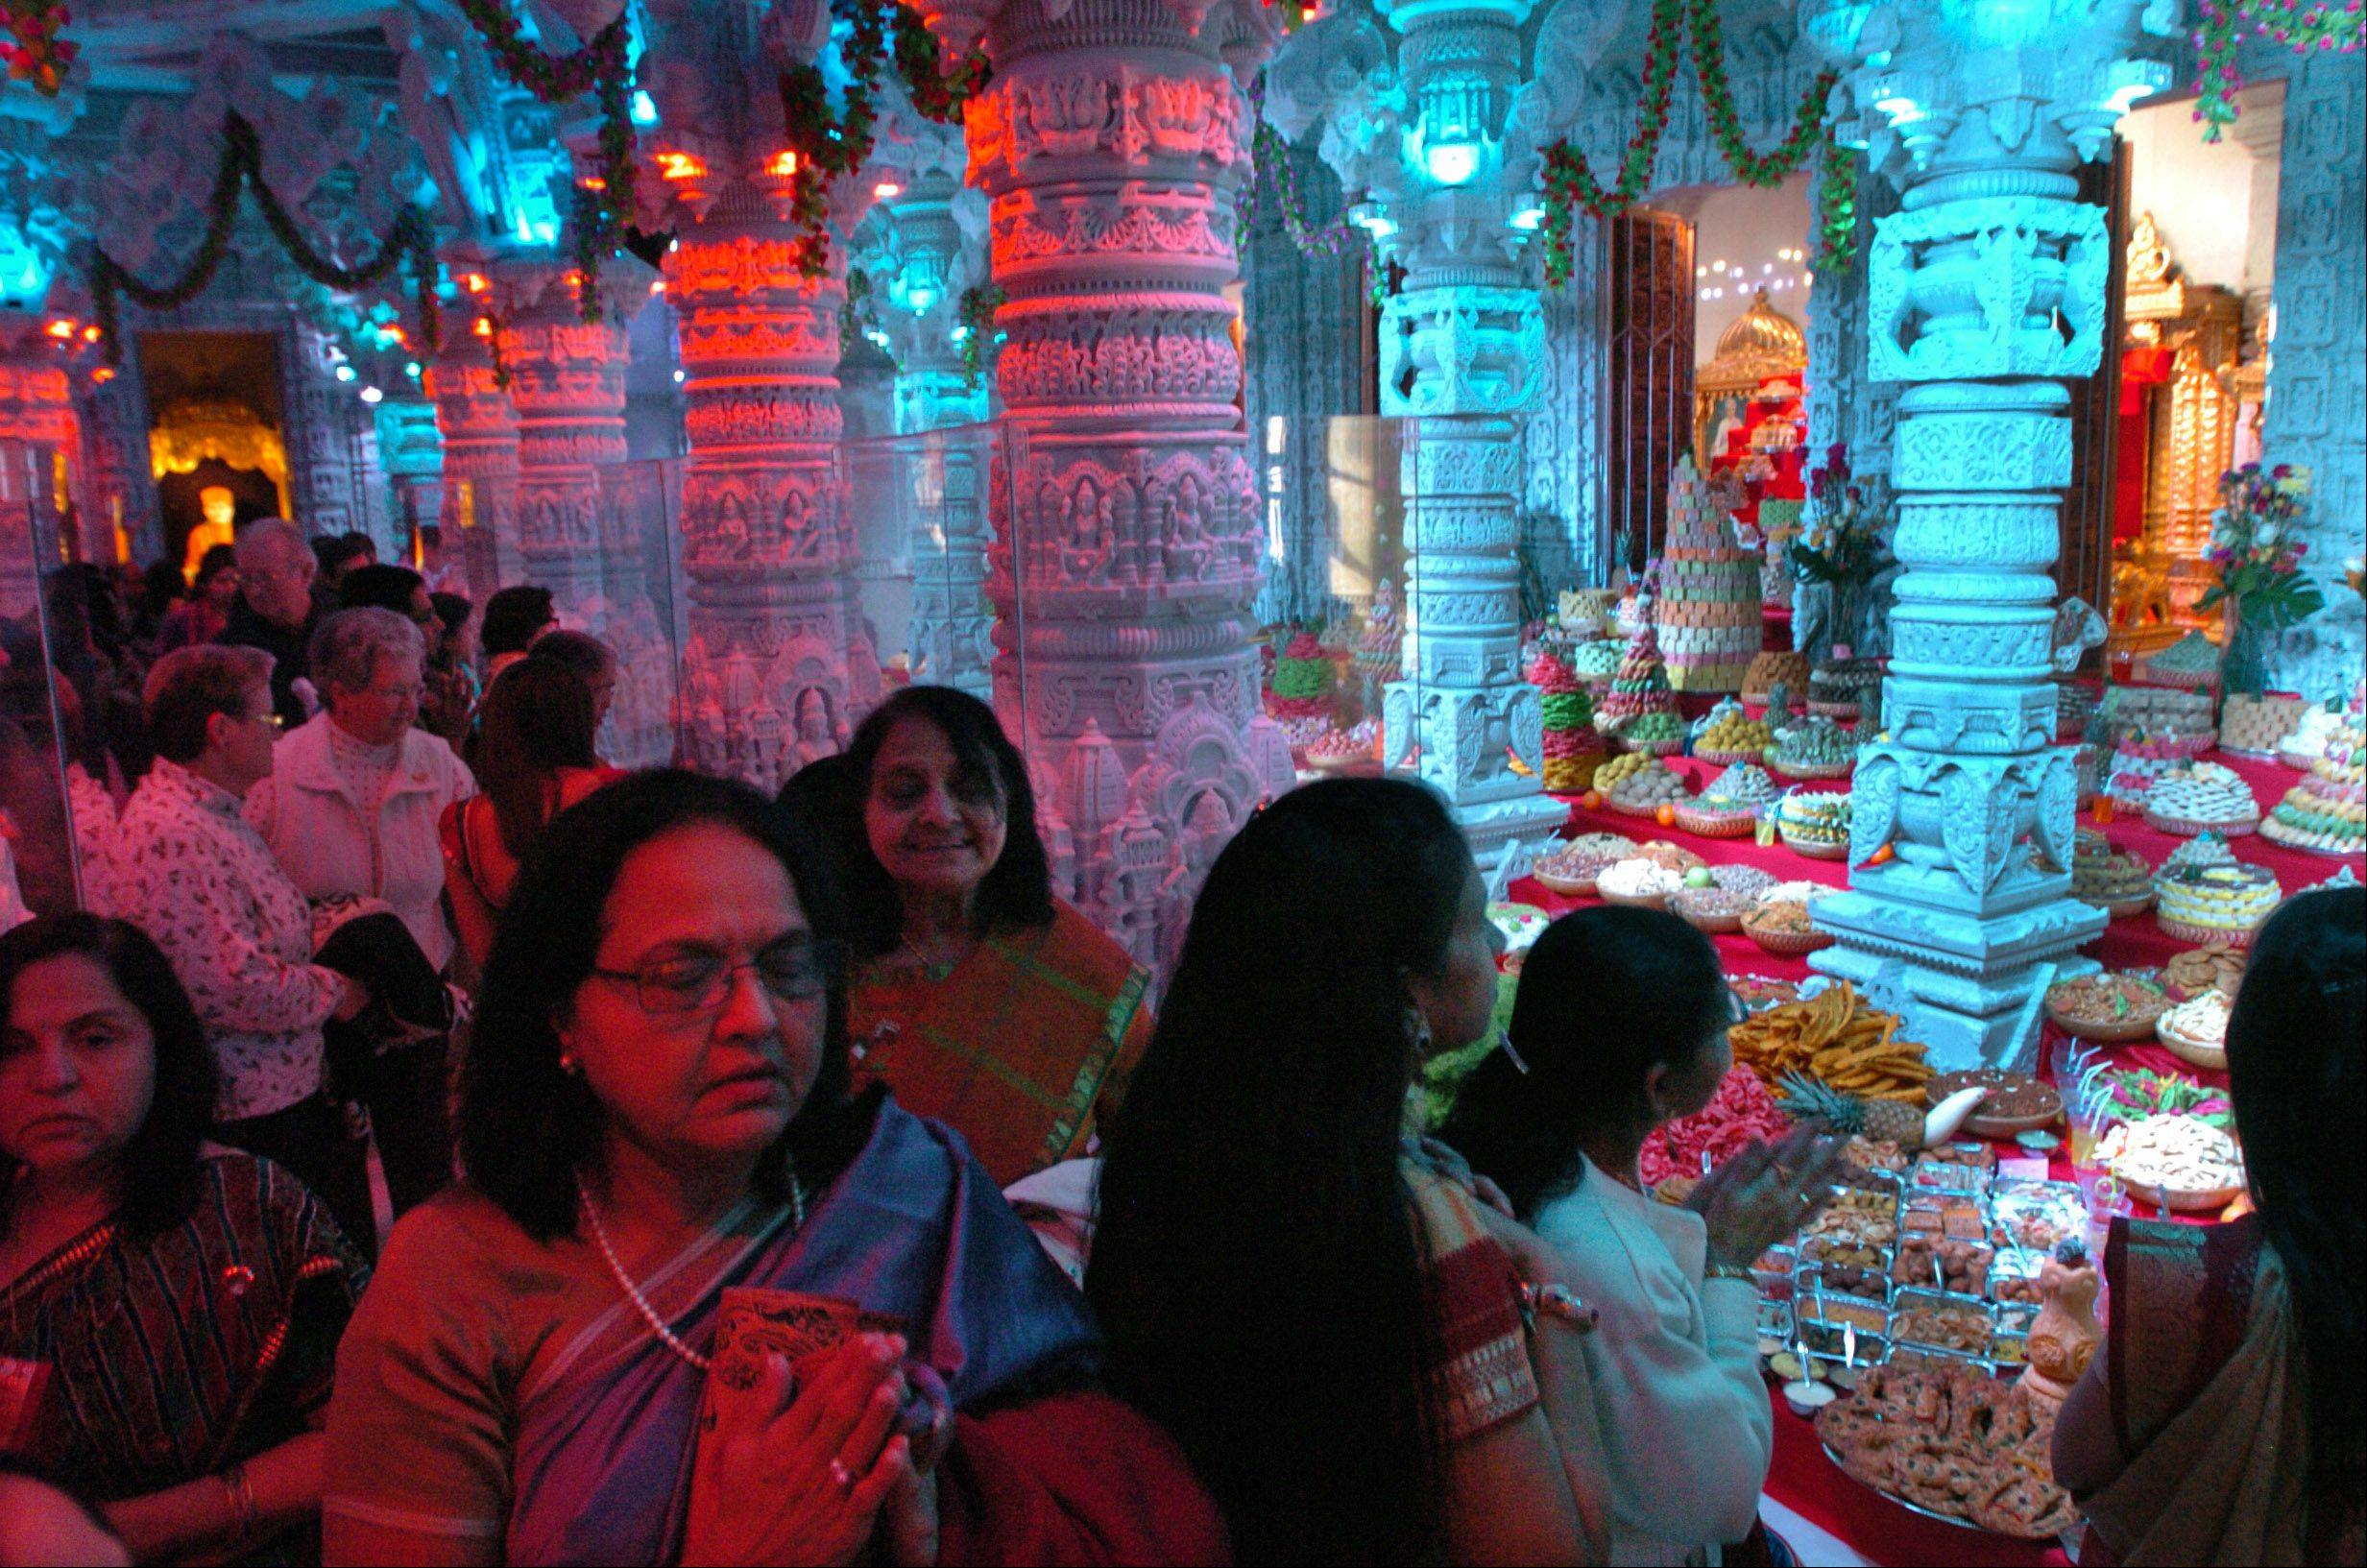 Visitors to BAPS Hindu Temple in Bartlett pass through and reflect over the annakut, or mountain of food, an offering of hundreds of vegetarian delicacies as the first meal of the Hindu New Year.